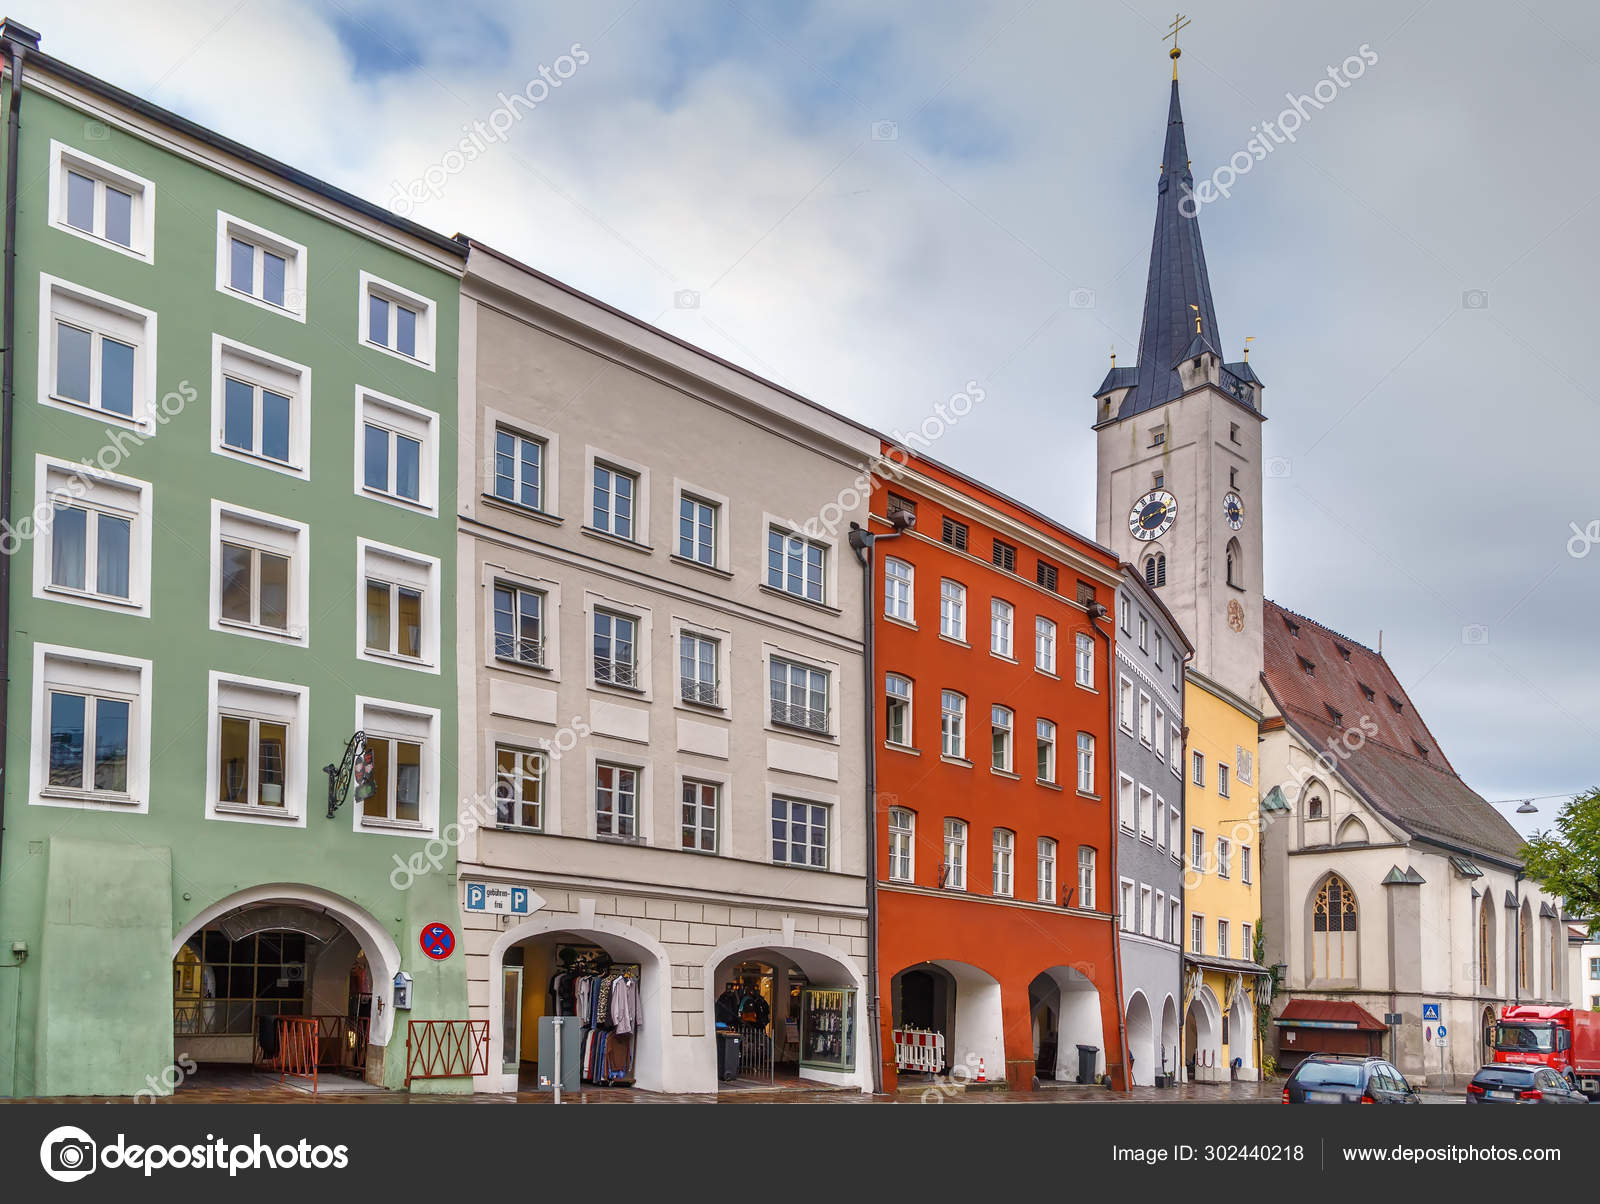 Wasserburg Am Inn Germania street in wasserburg am inn, germany – stock editorial photo